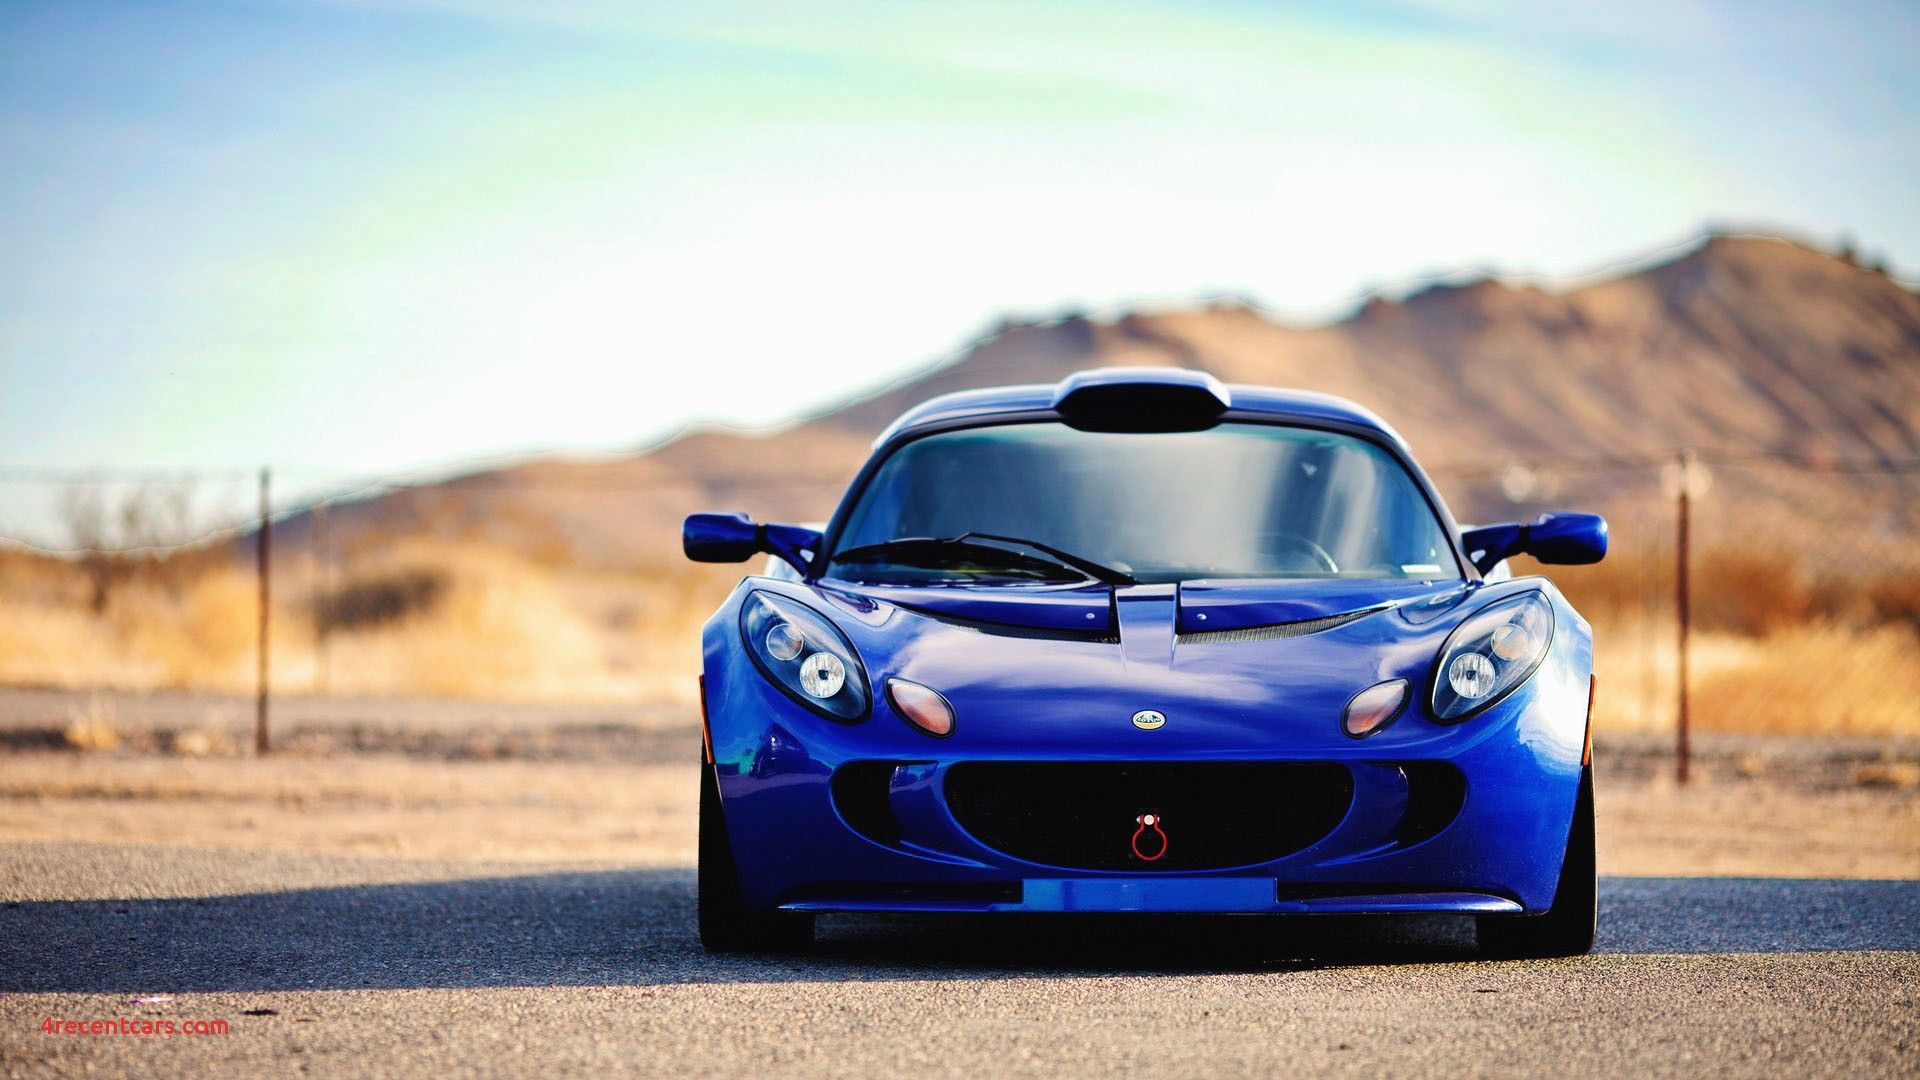 Lotus Exige Scura Wallpapers by